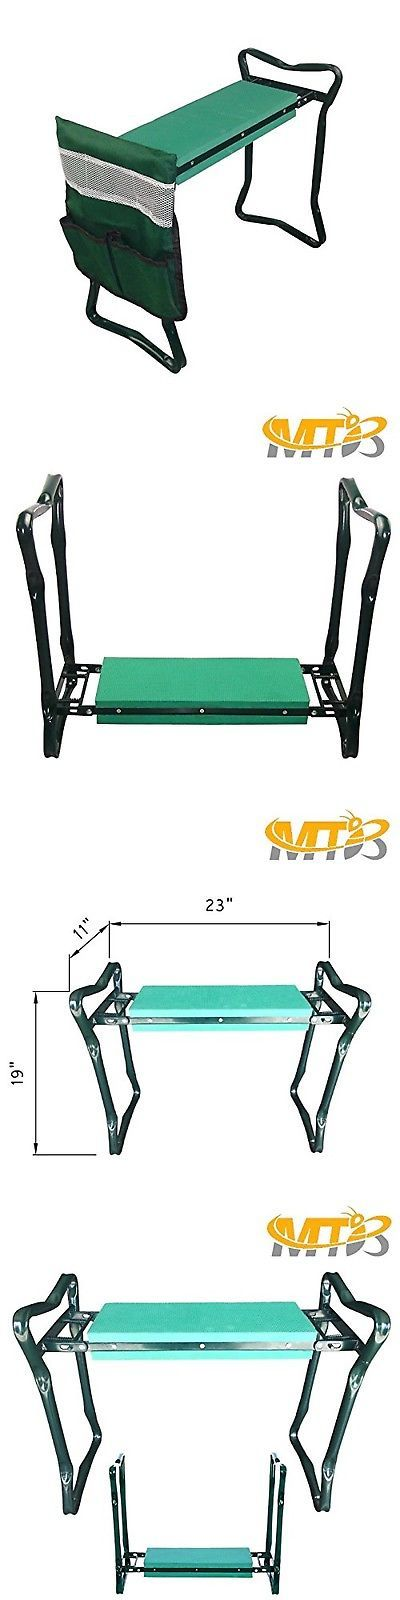 MTB Heavy Duty Folding Garden Kneeler Bench For Weeding And Portable Garden  S | Garden Kneelers Pads And Seats 75669 | Pinterest